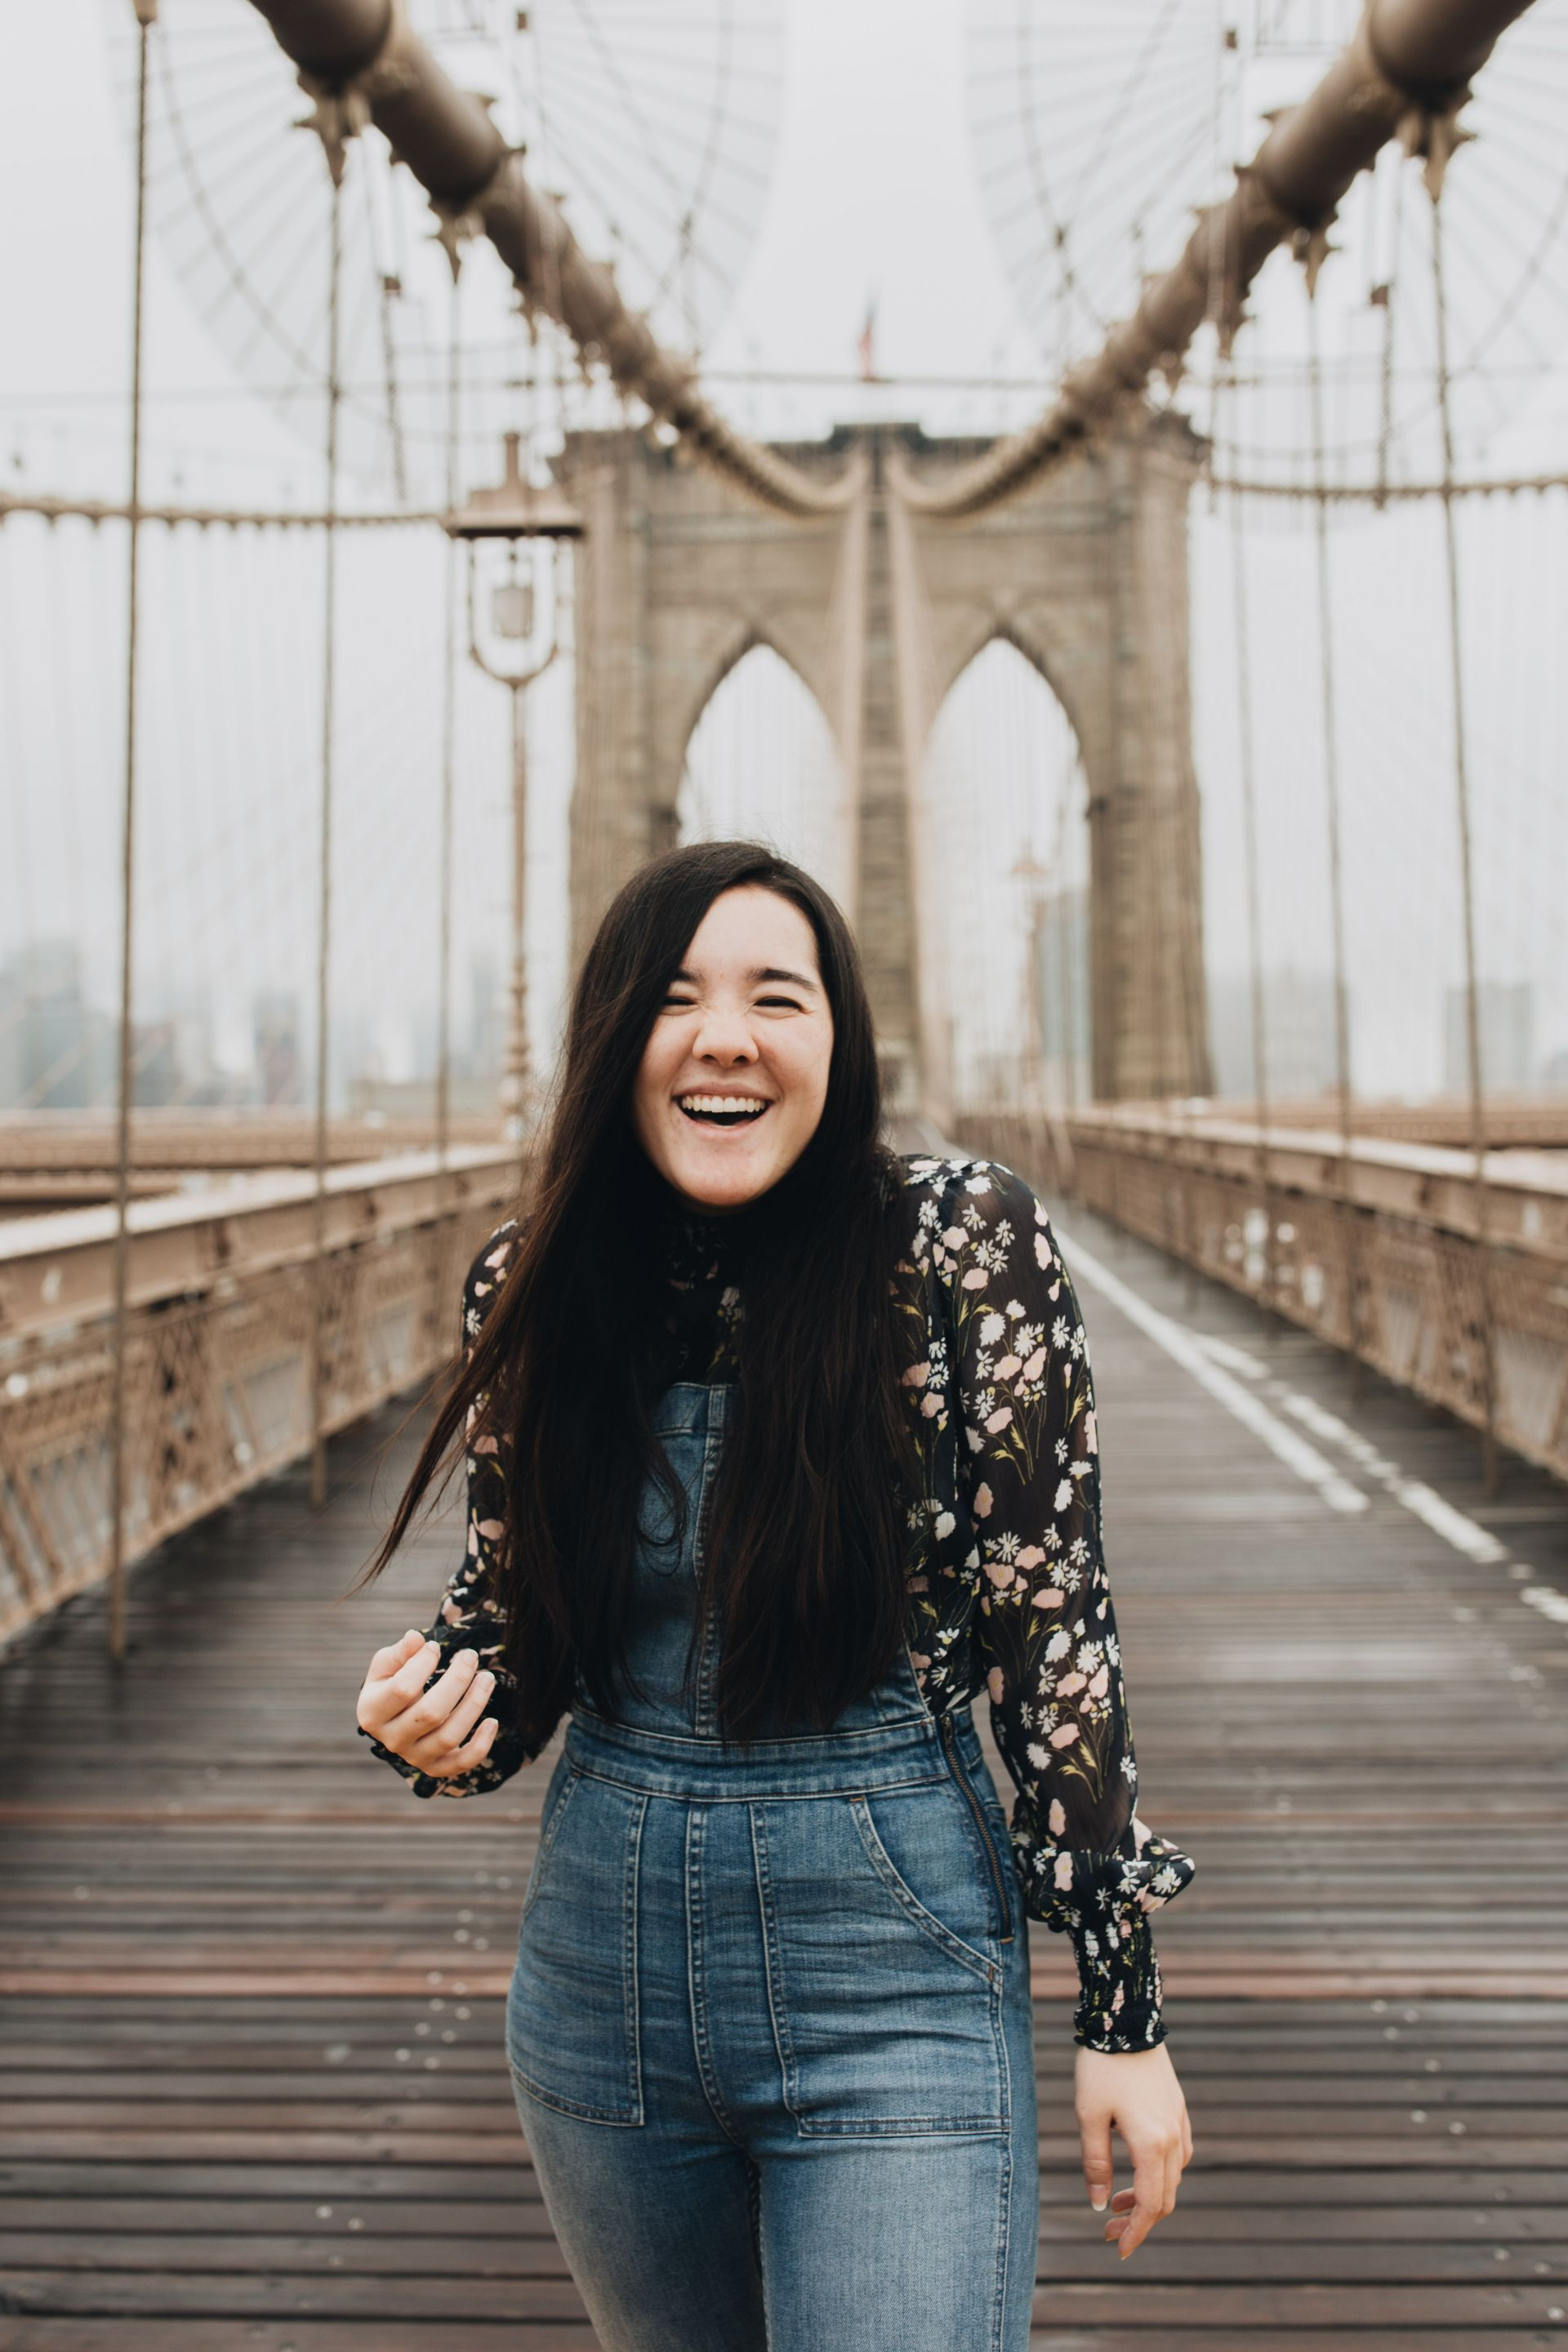 19 Things I Learned Before Turning 20 | SarahMichiko.com (brooklyn bridge, new york city)